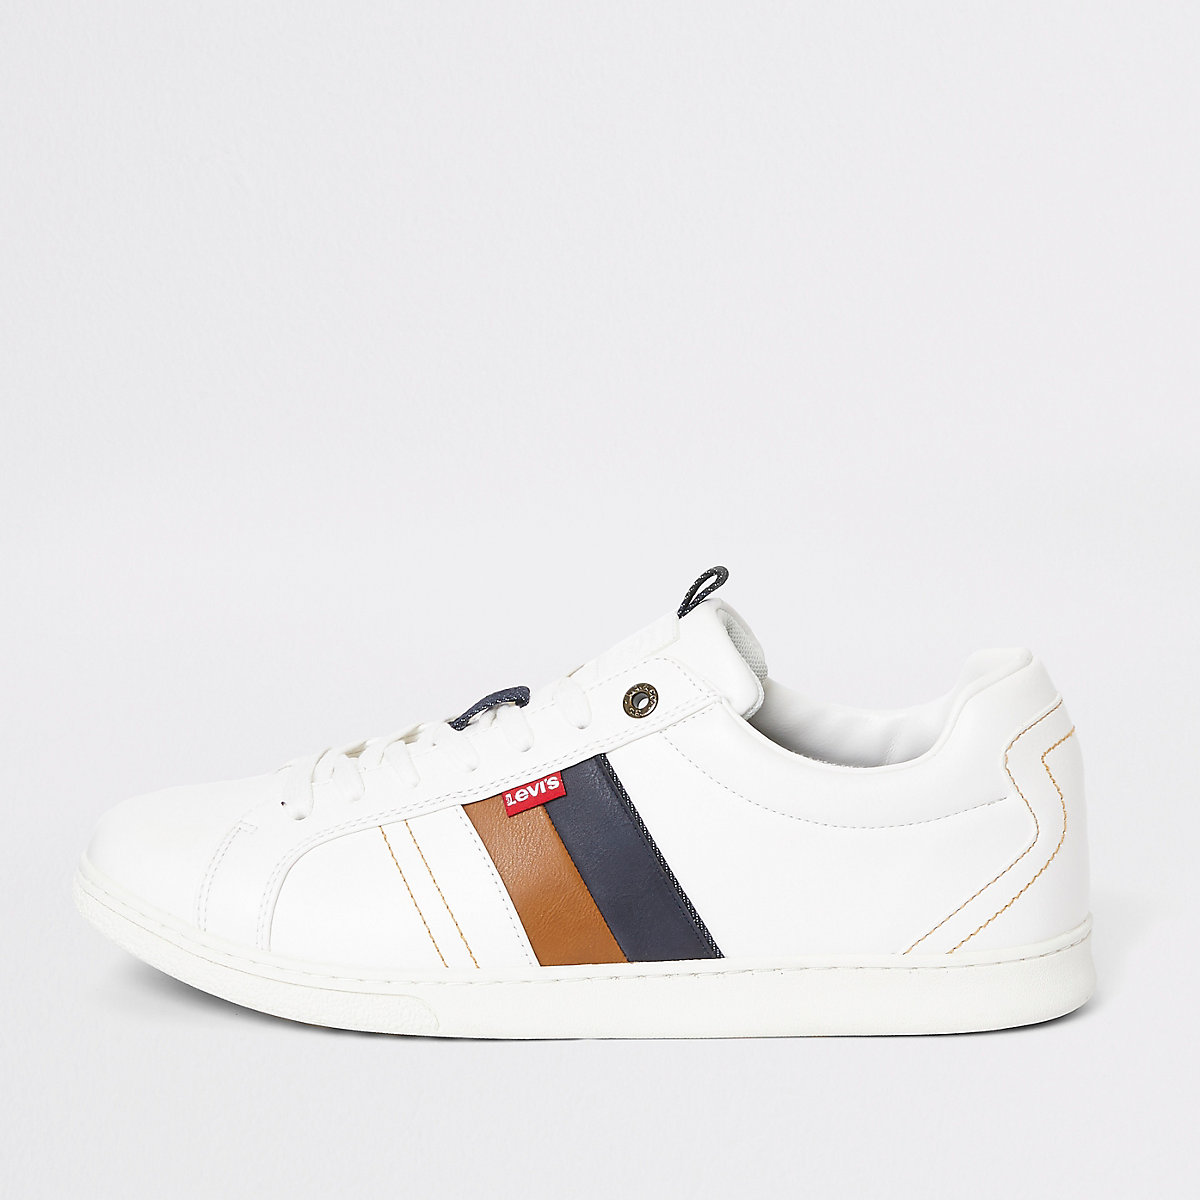 Levi's white Tulare trainers